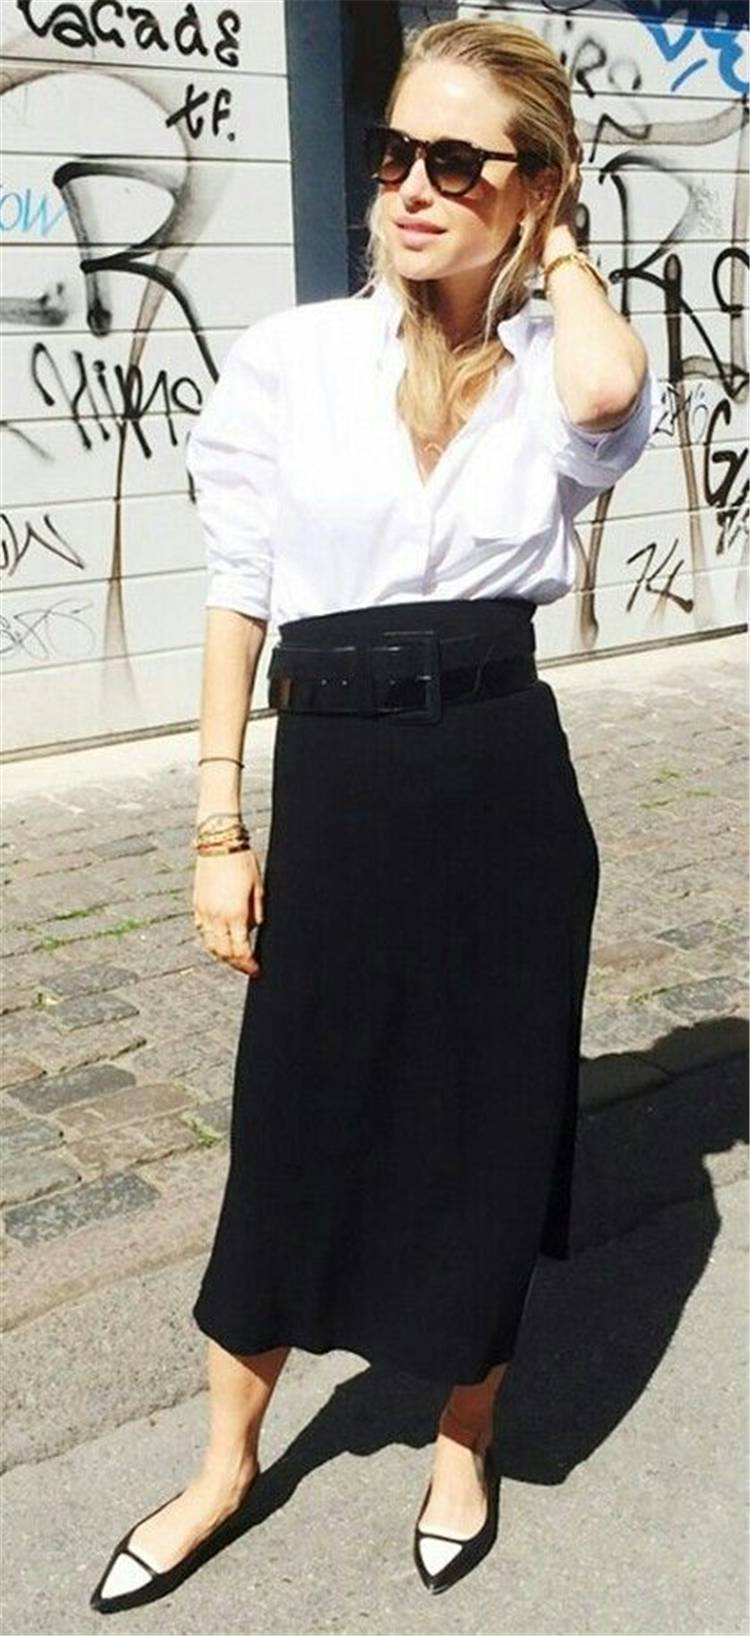 Fresh And Cool Spring Outfits With A White Shirt; Spring Outfits; Outfits; Spring Skirt; Spring Ripped Jeans Outfits; White Shirt Outfits; Spring Black Pants; Spring Black Skirt Outfits; Cute Spring Outfits;Spring#springoutfits#outfits#springshirtoutfits#springskirt#springrippedjeans#springblackpants#whiteshirt